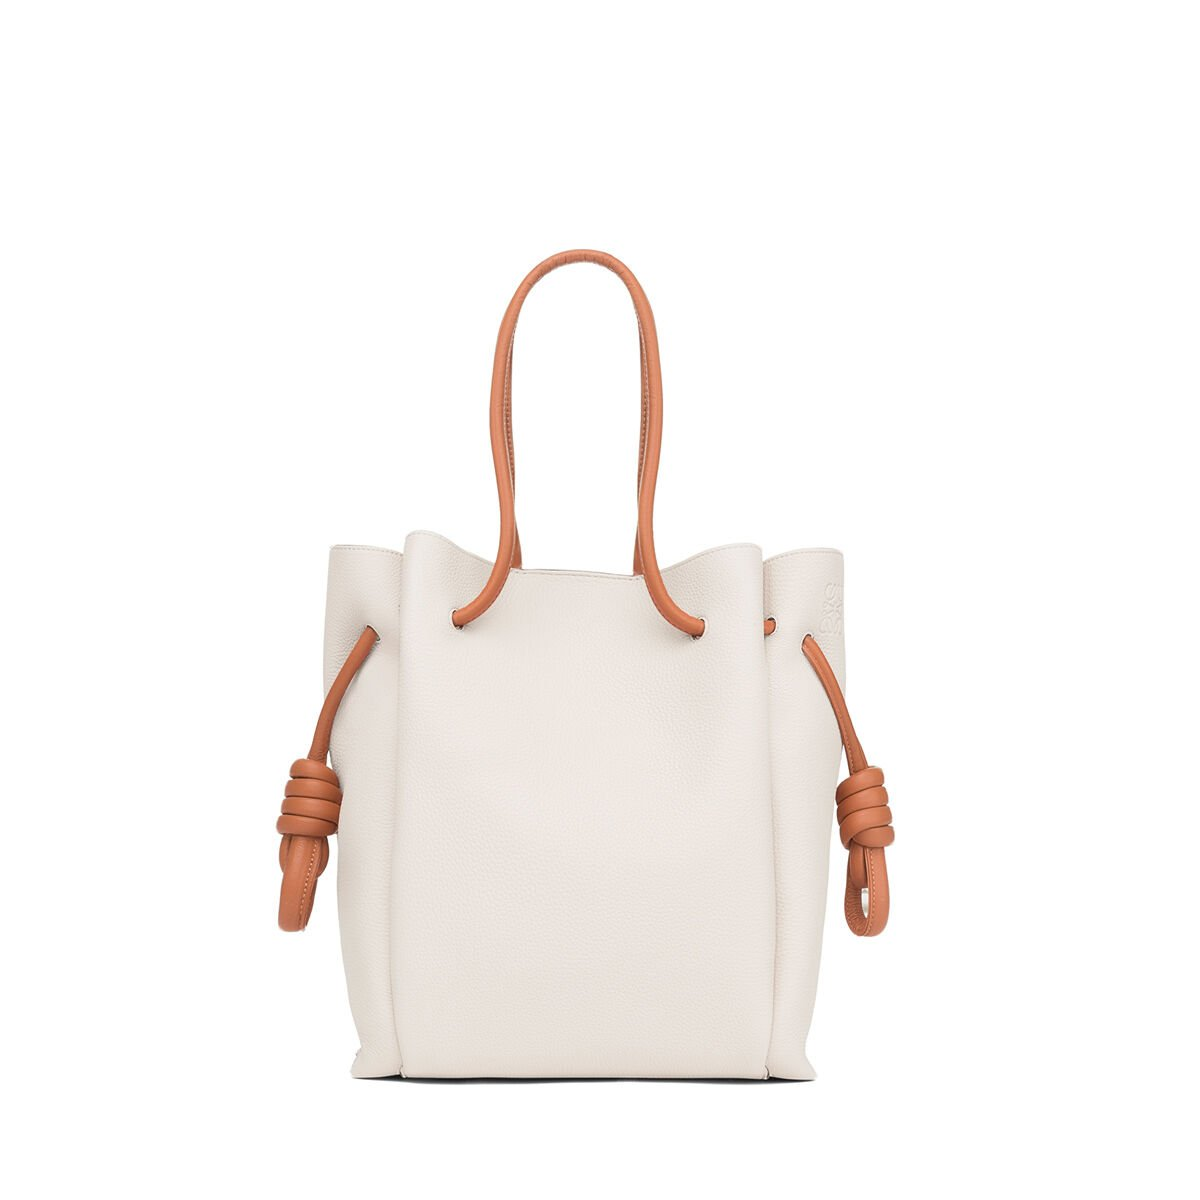 Outlet Store Sale Online New Styles Cheap Price Tan Small Flamenco Knot Tote Loewe Classic Cheap Price For Nice Sale Online Marketable YdHSu9TYr